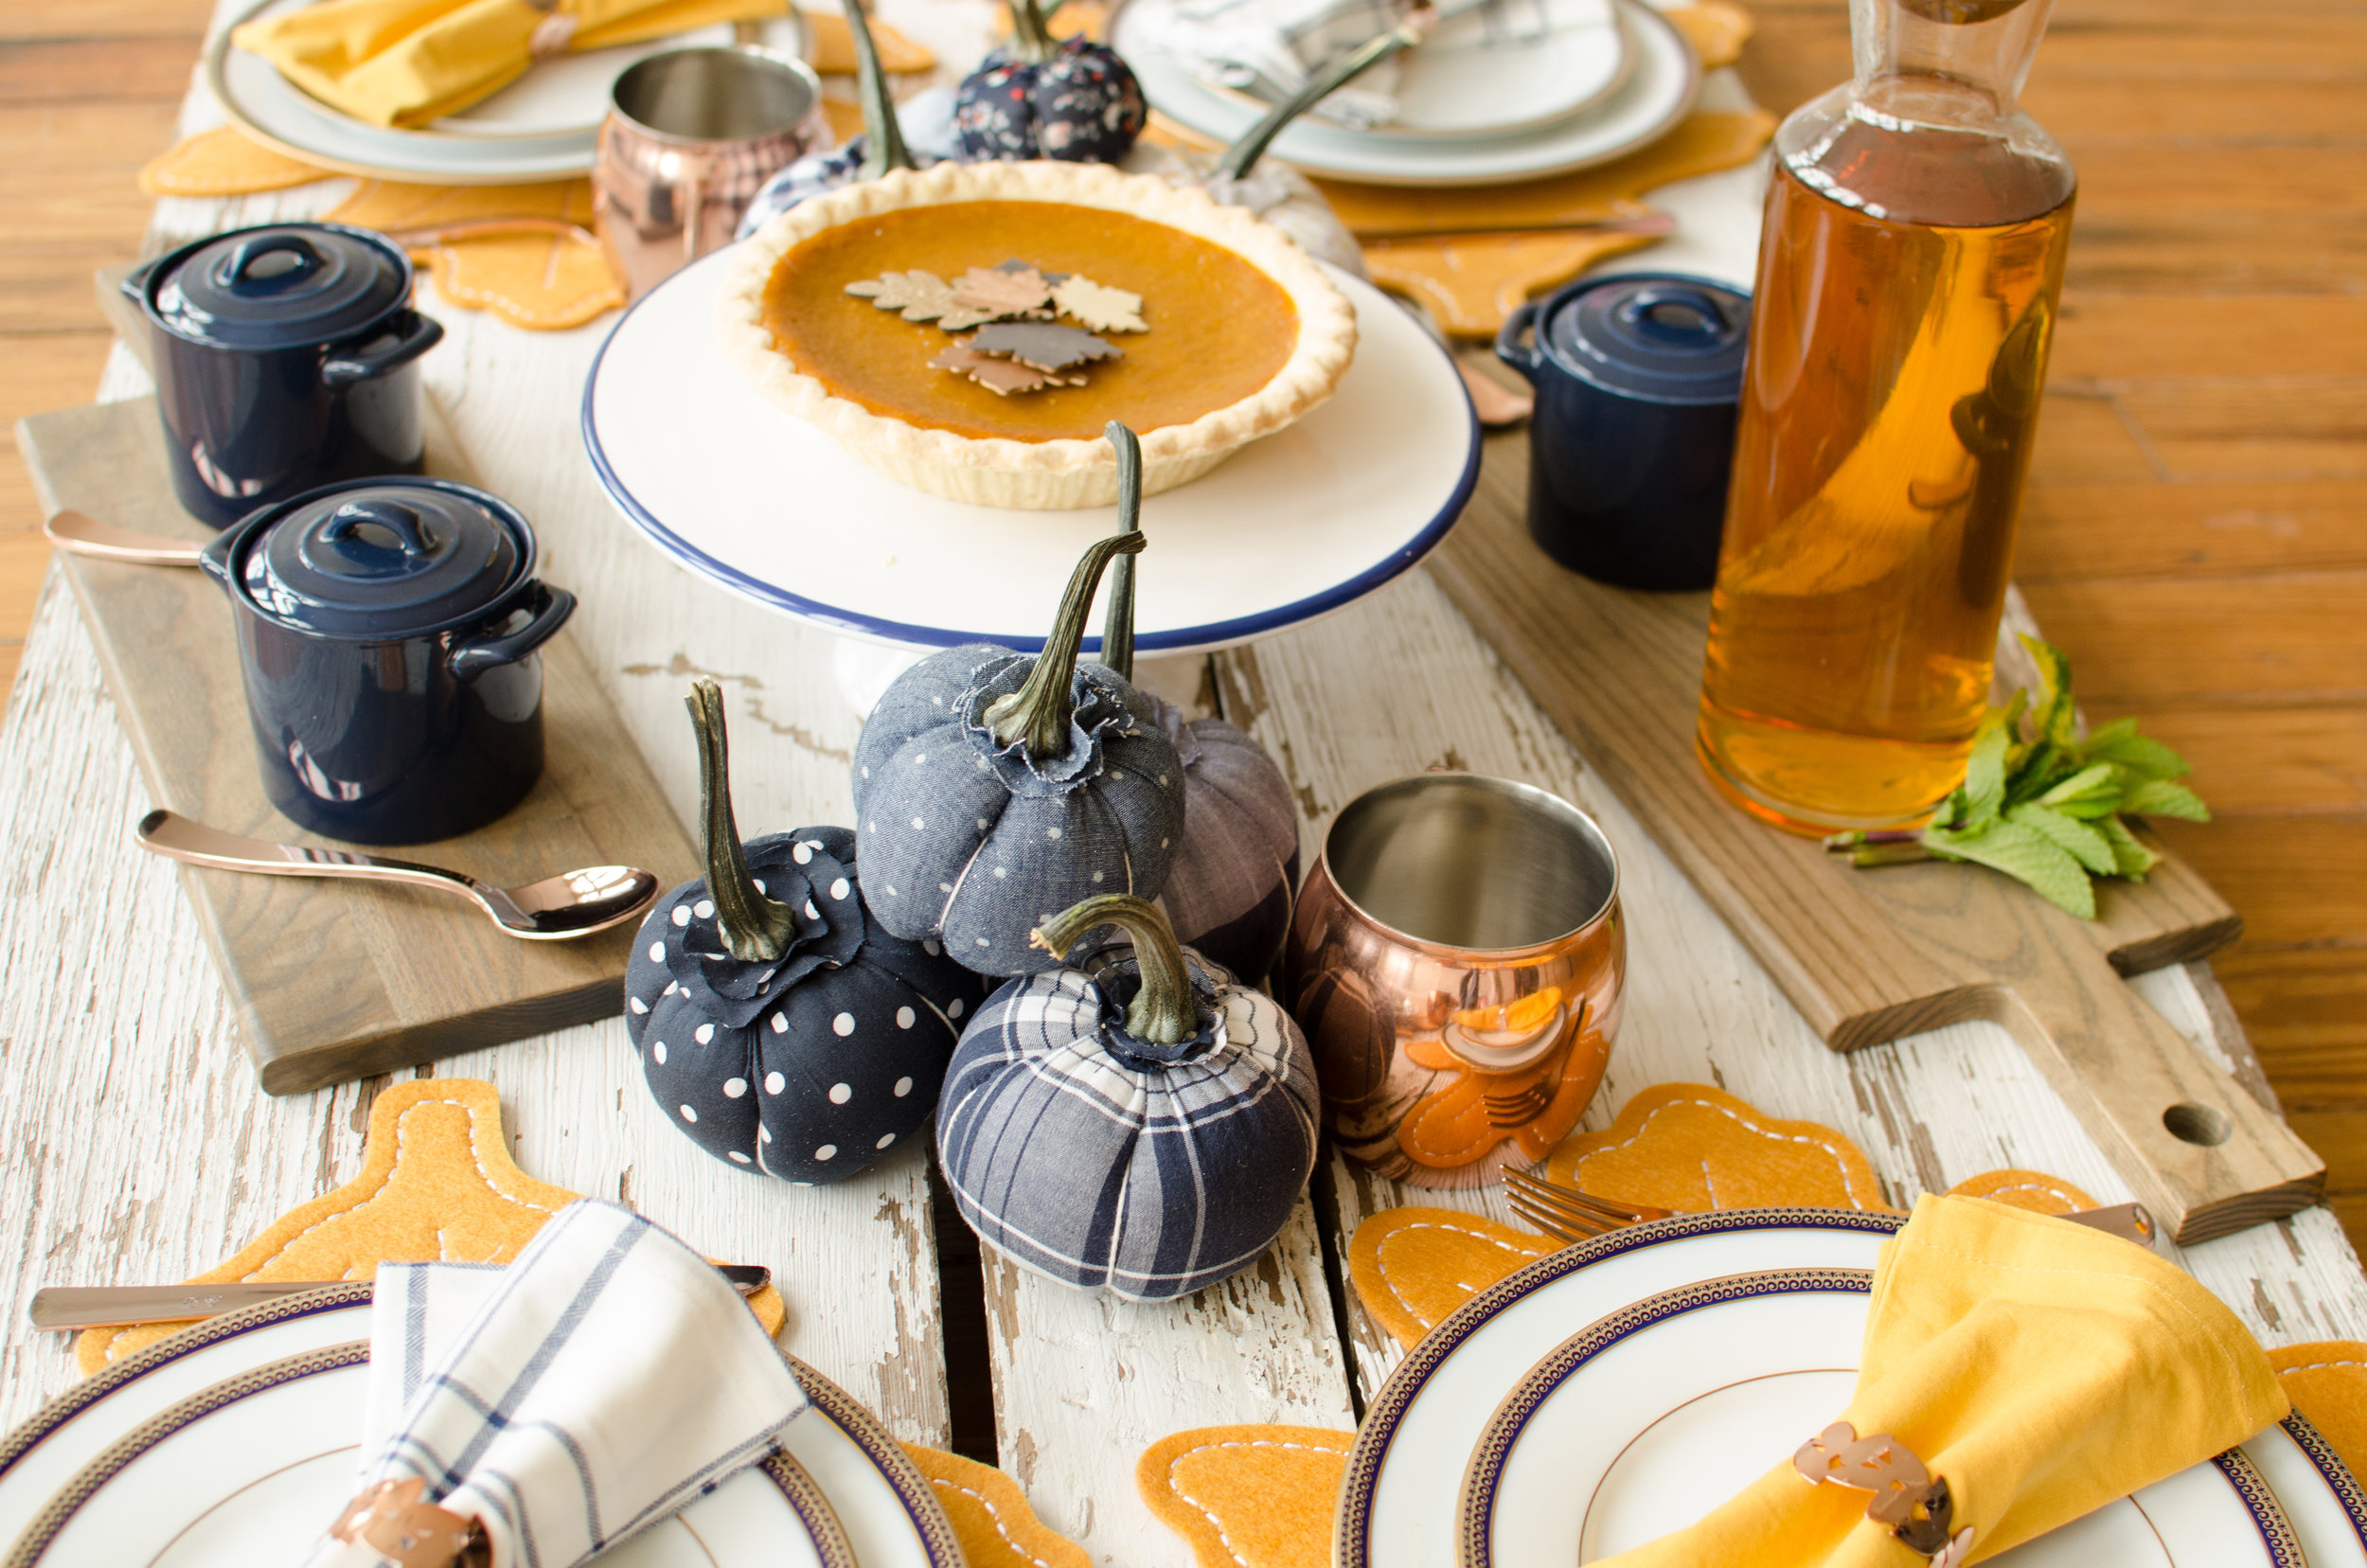 Fabric pumpkins in fun patterns will add a bit of fun to your beautiful Thanksgiving table. See more Thanksgiving Party Ideas from party planner, Mint Event Design in Austin, Texas on www.minteventdesign.com #thanksgiving #thanksgivingdecorations #tablescape #thanksgivingtable #pumpkins #tablesettings #fallparty